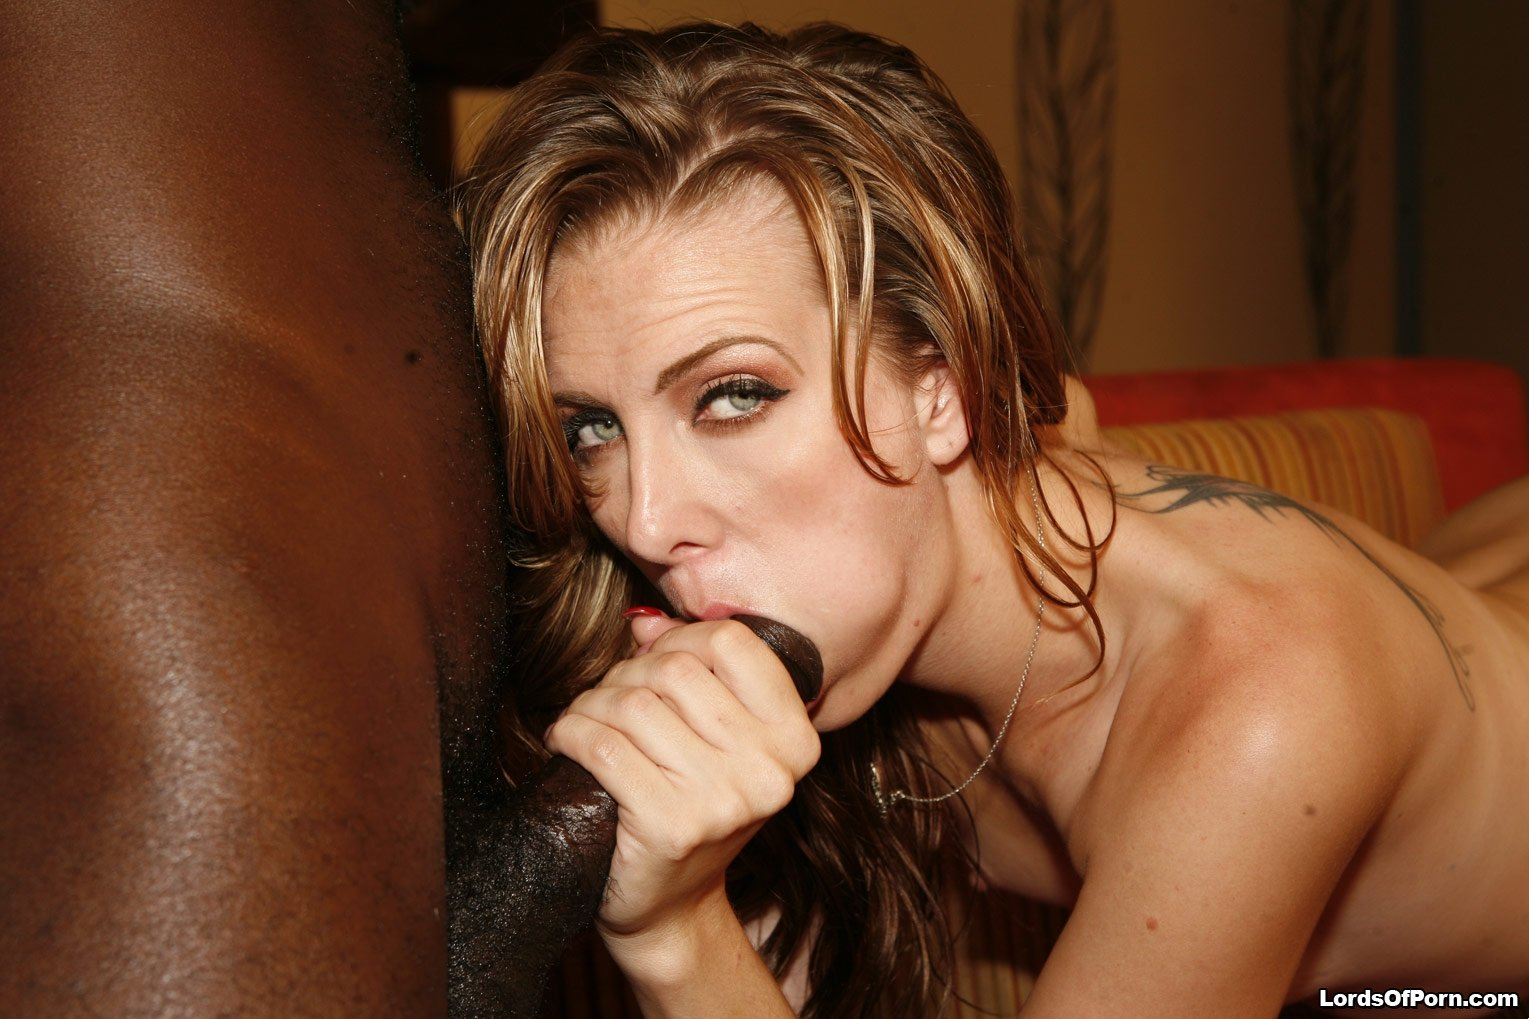 best free sex chat sites